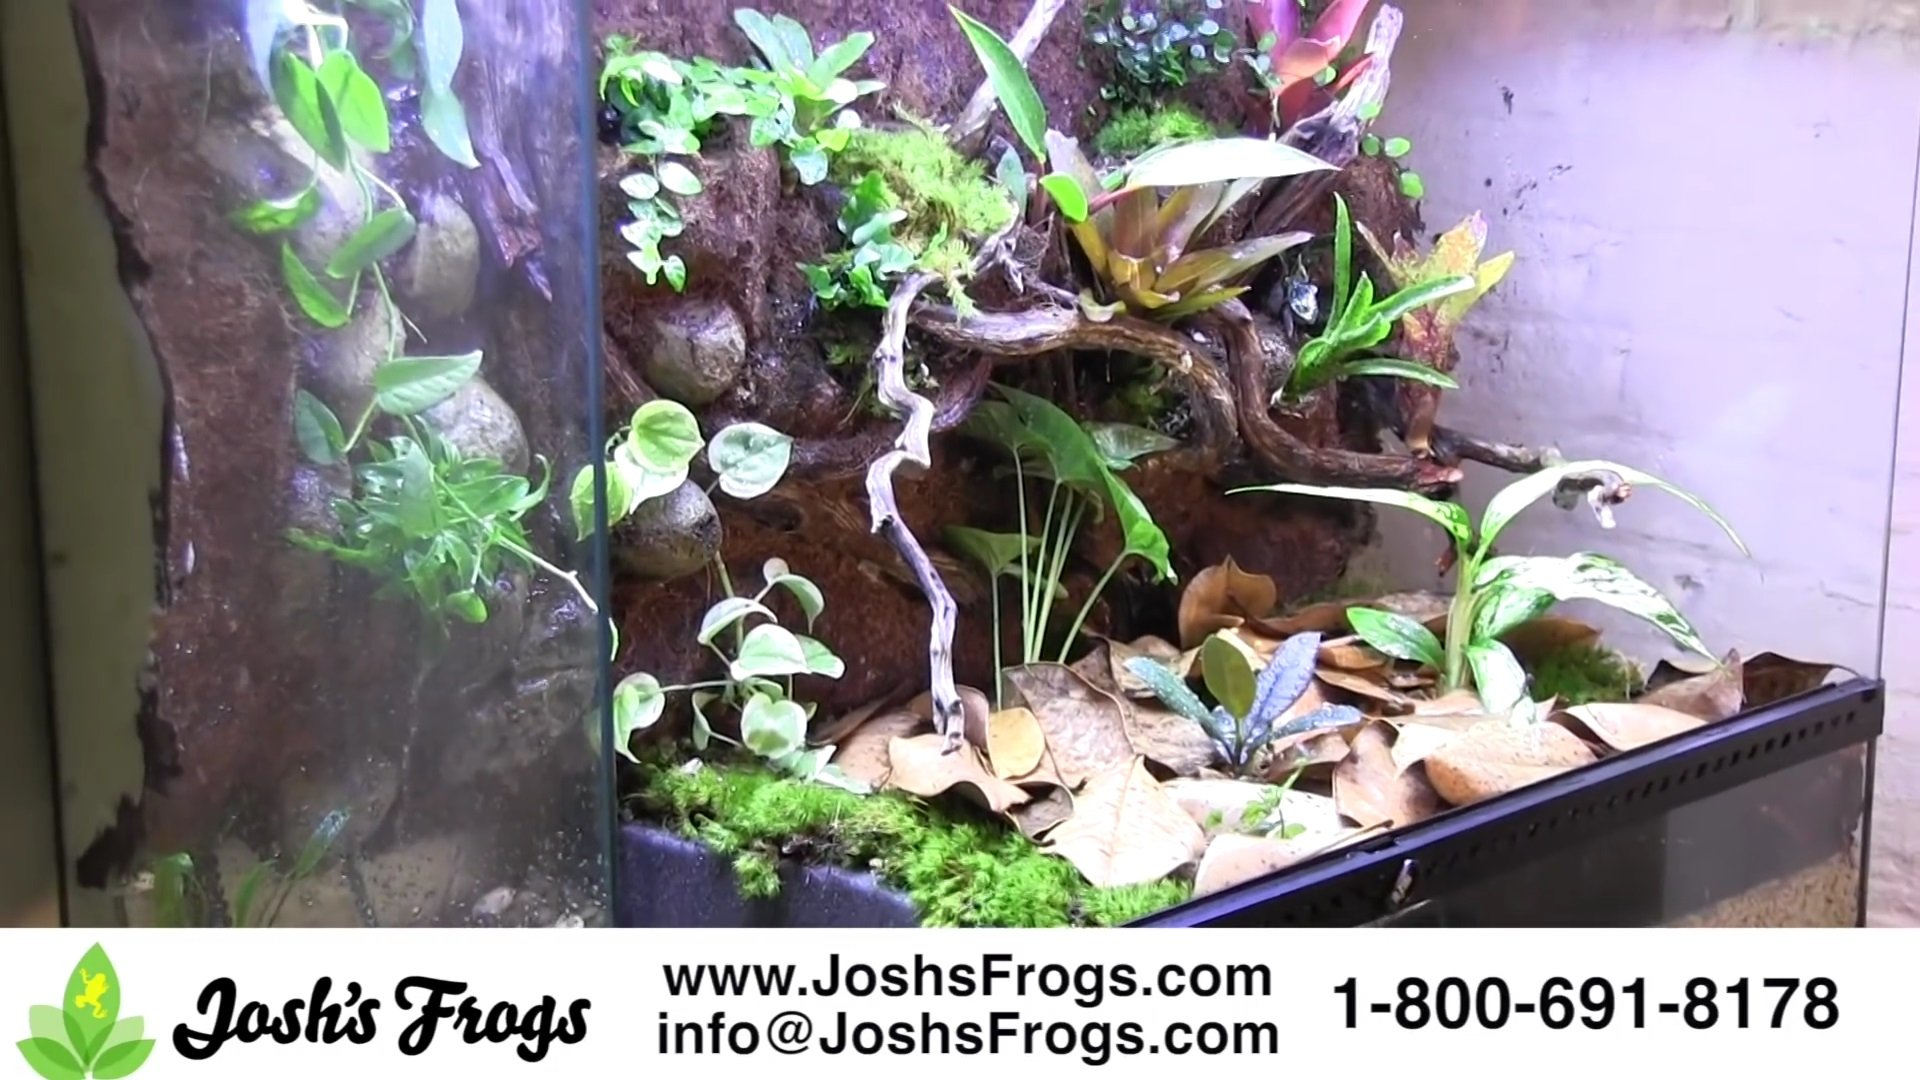 How To Make A Vivarium Waterfall Josh S Frogs How To Guides